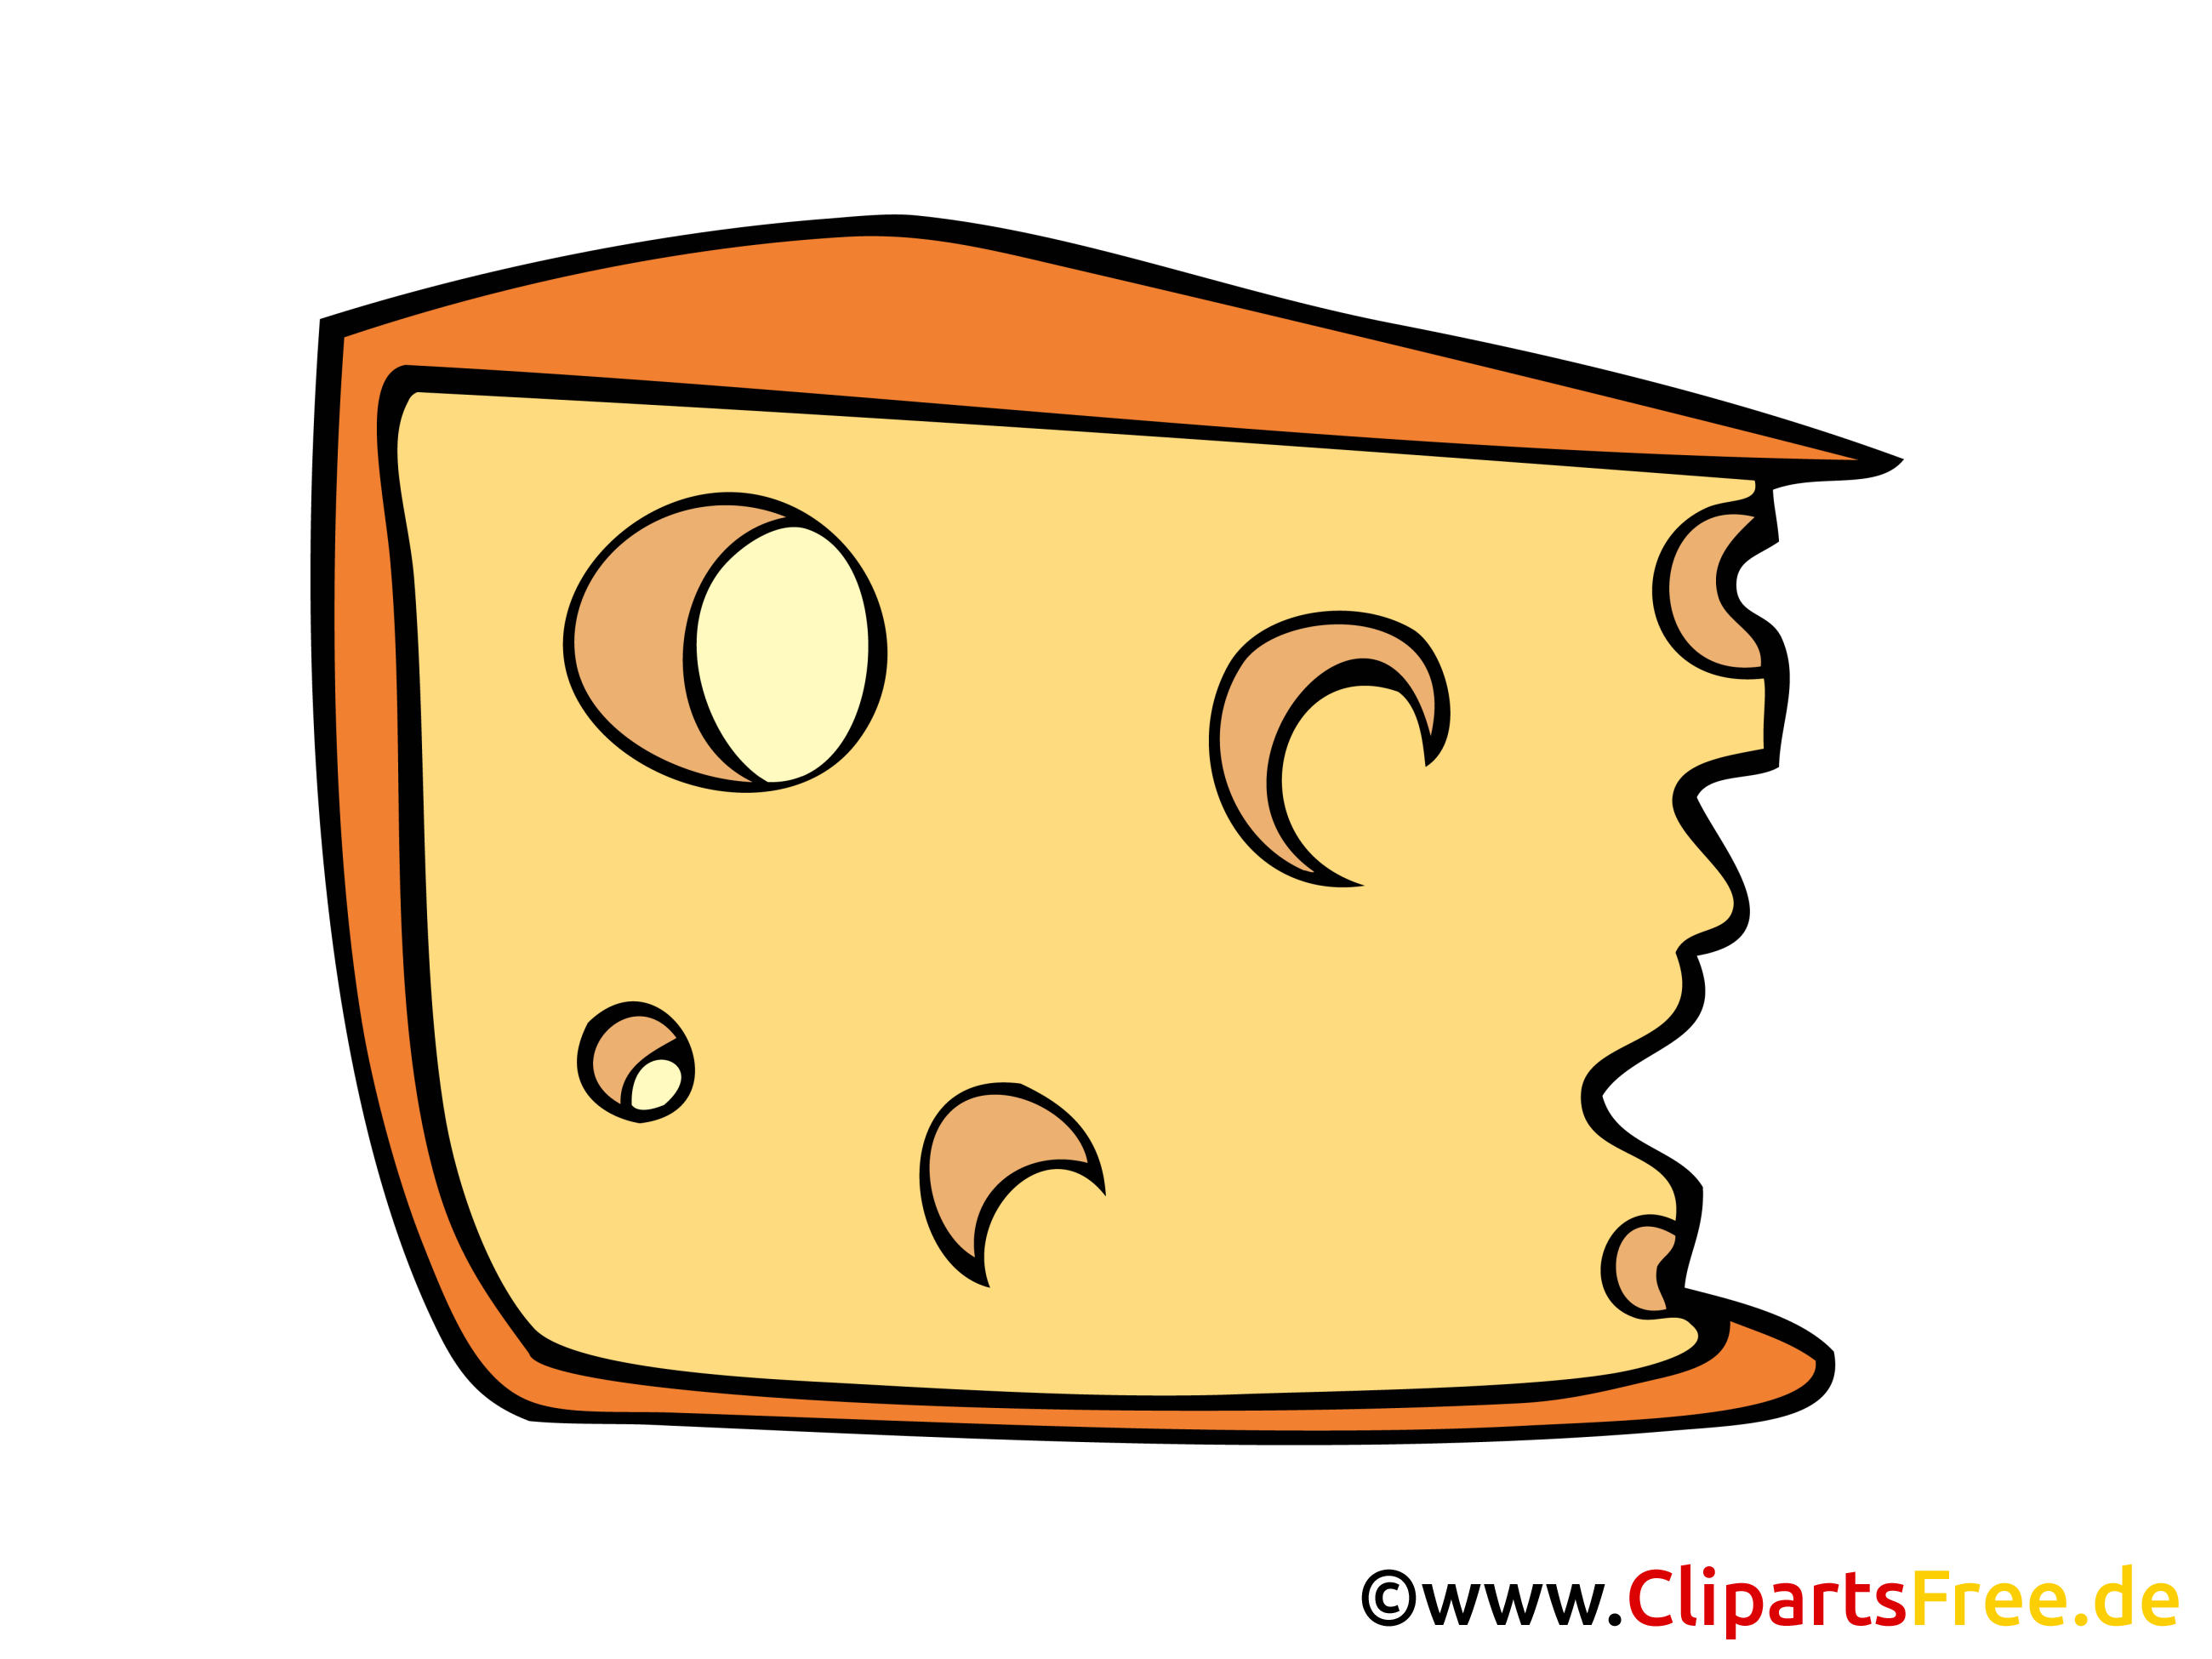 Cheese Clip Art, Image, Picture free